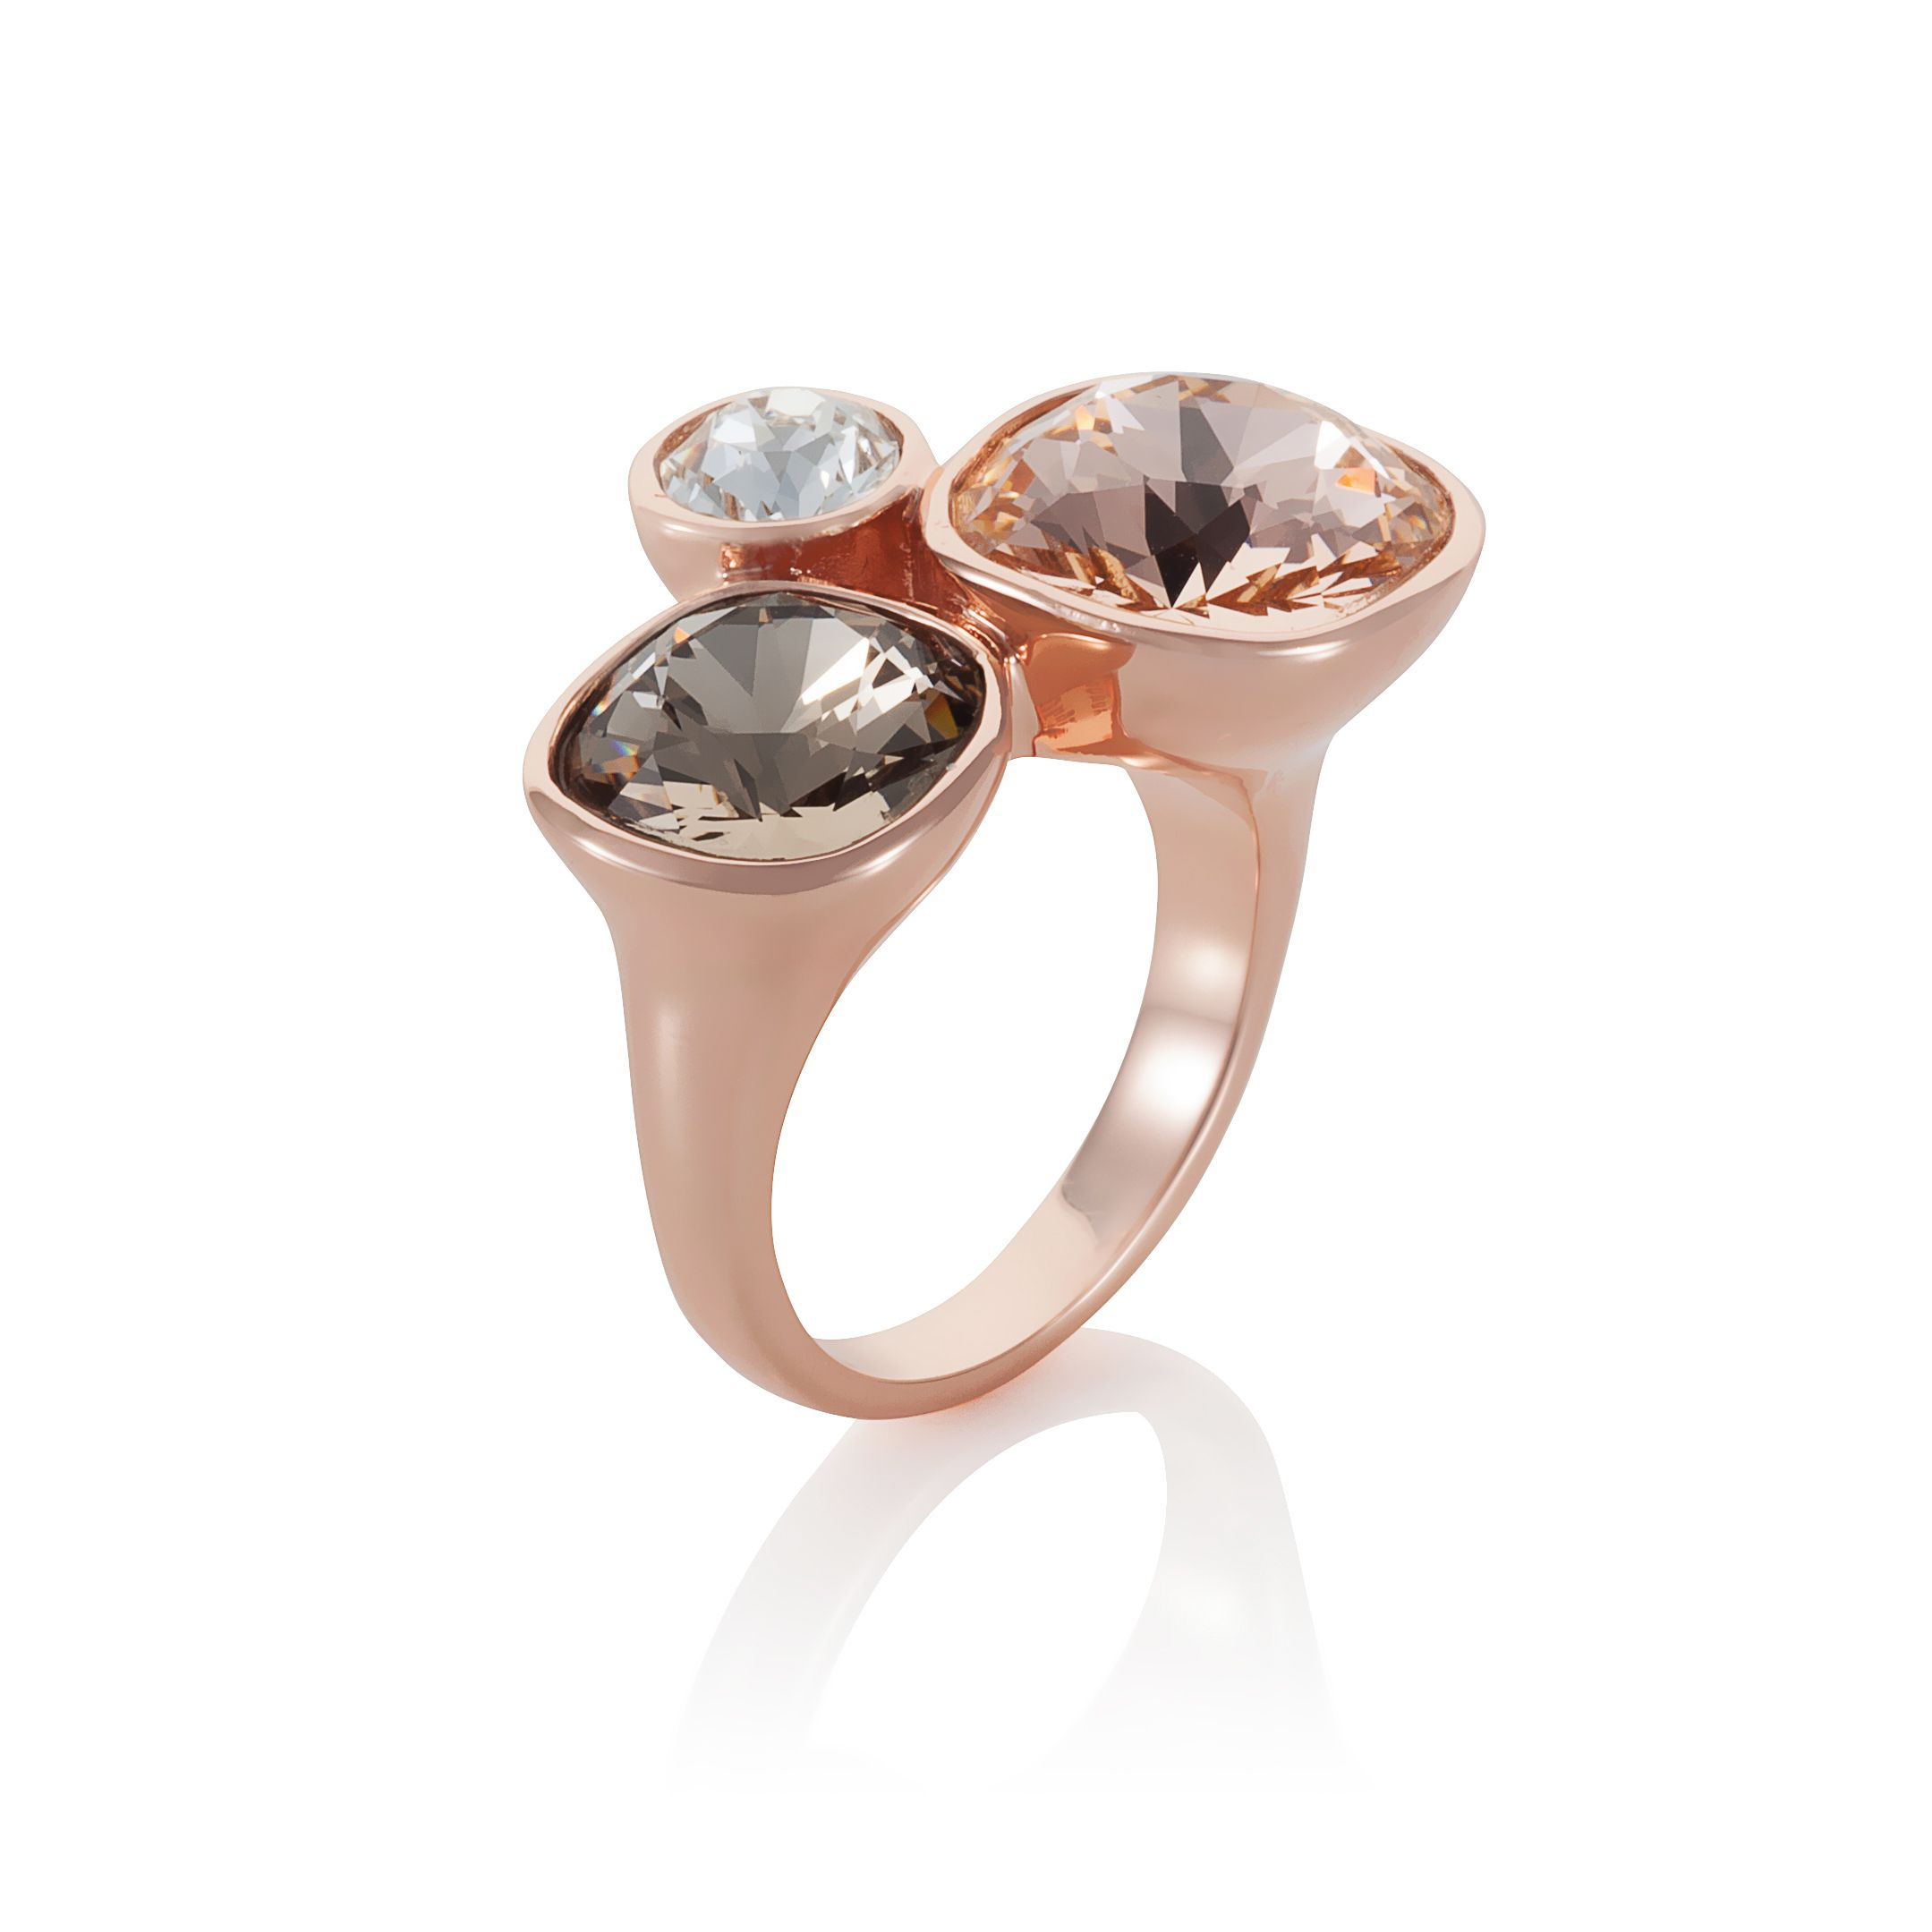 18ct rose gold plated Kailua ring